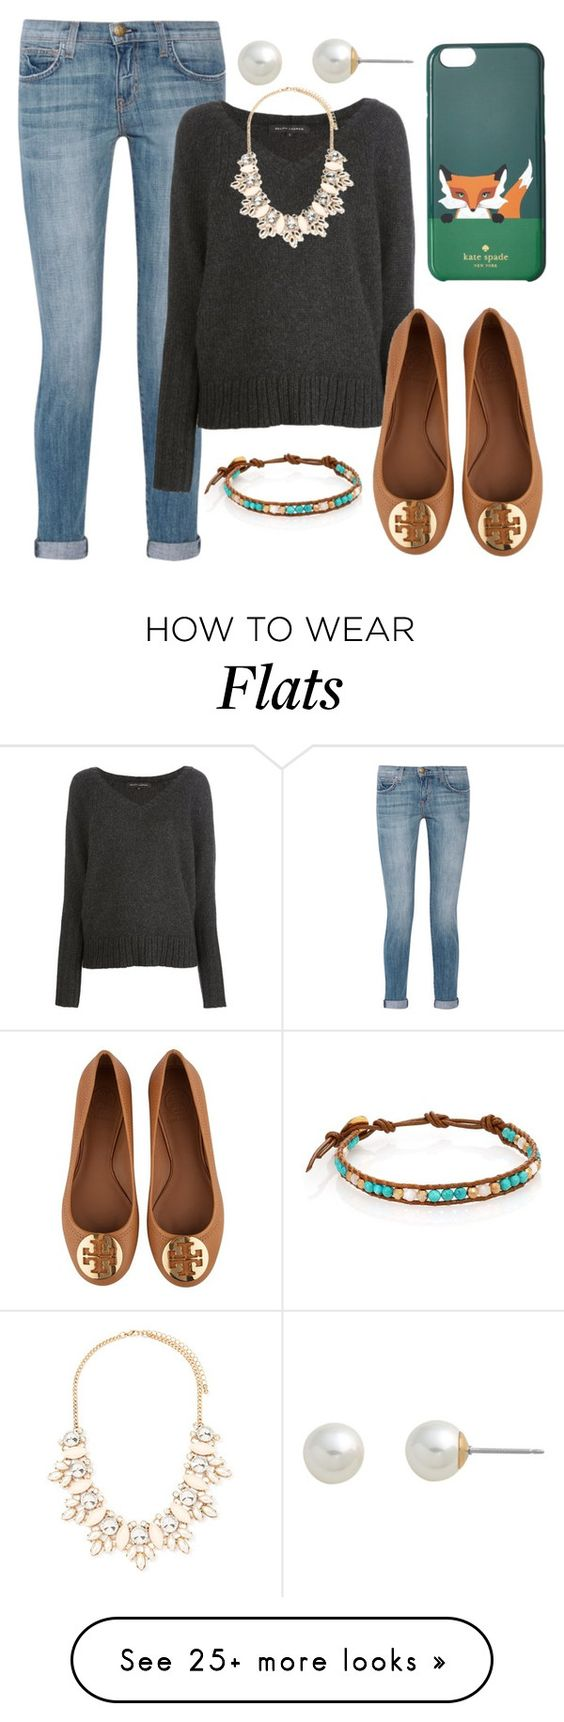 """B is for ballerina flats"" by sunshine915 on Polyvore featuring moda, Chan Luu, Current/Elliott, Ralph Lauren Black Label, Tory Burch, Forever 21, Kate Spade i Carolee:"